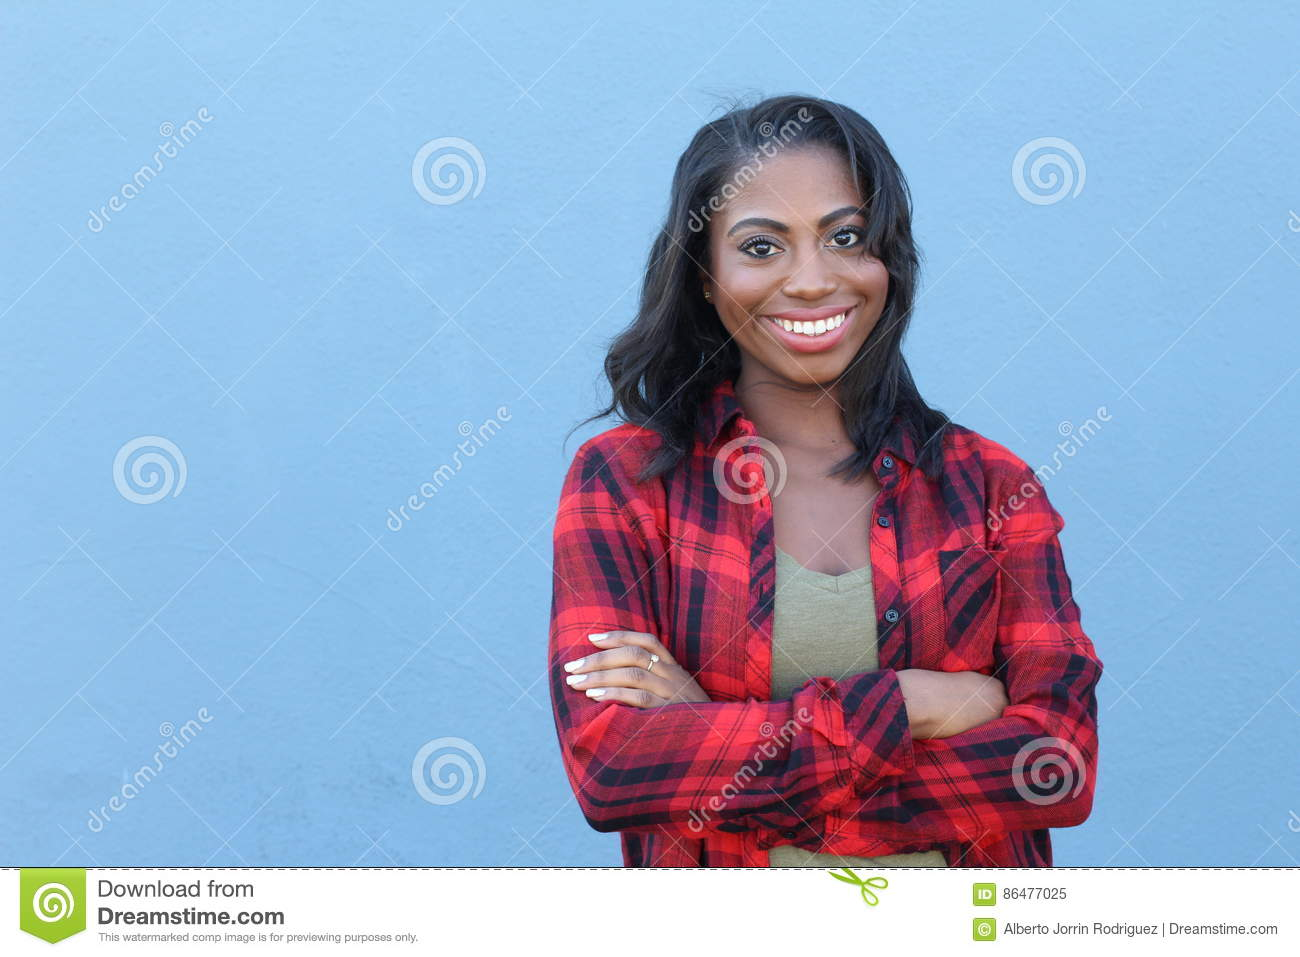 Download Happy Healthy African Woman Smiling With Her Arms Crossed Stock Image - Image of confidence, emotion: 86477025